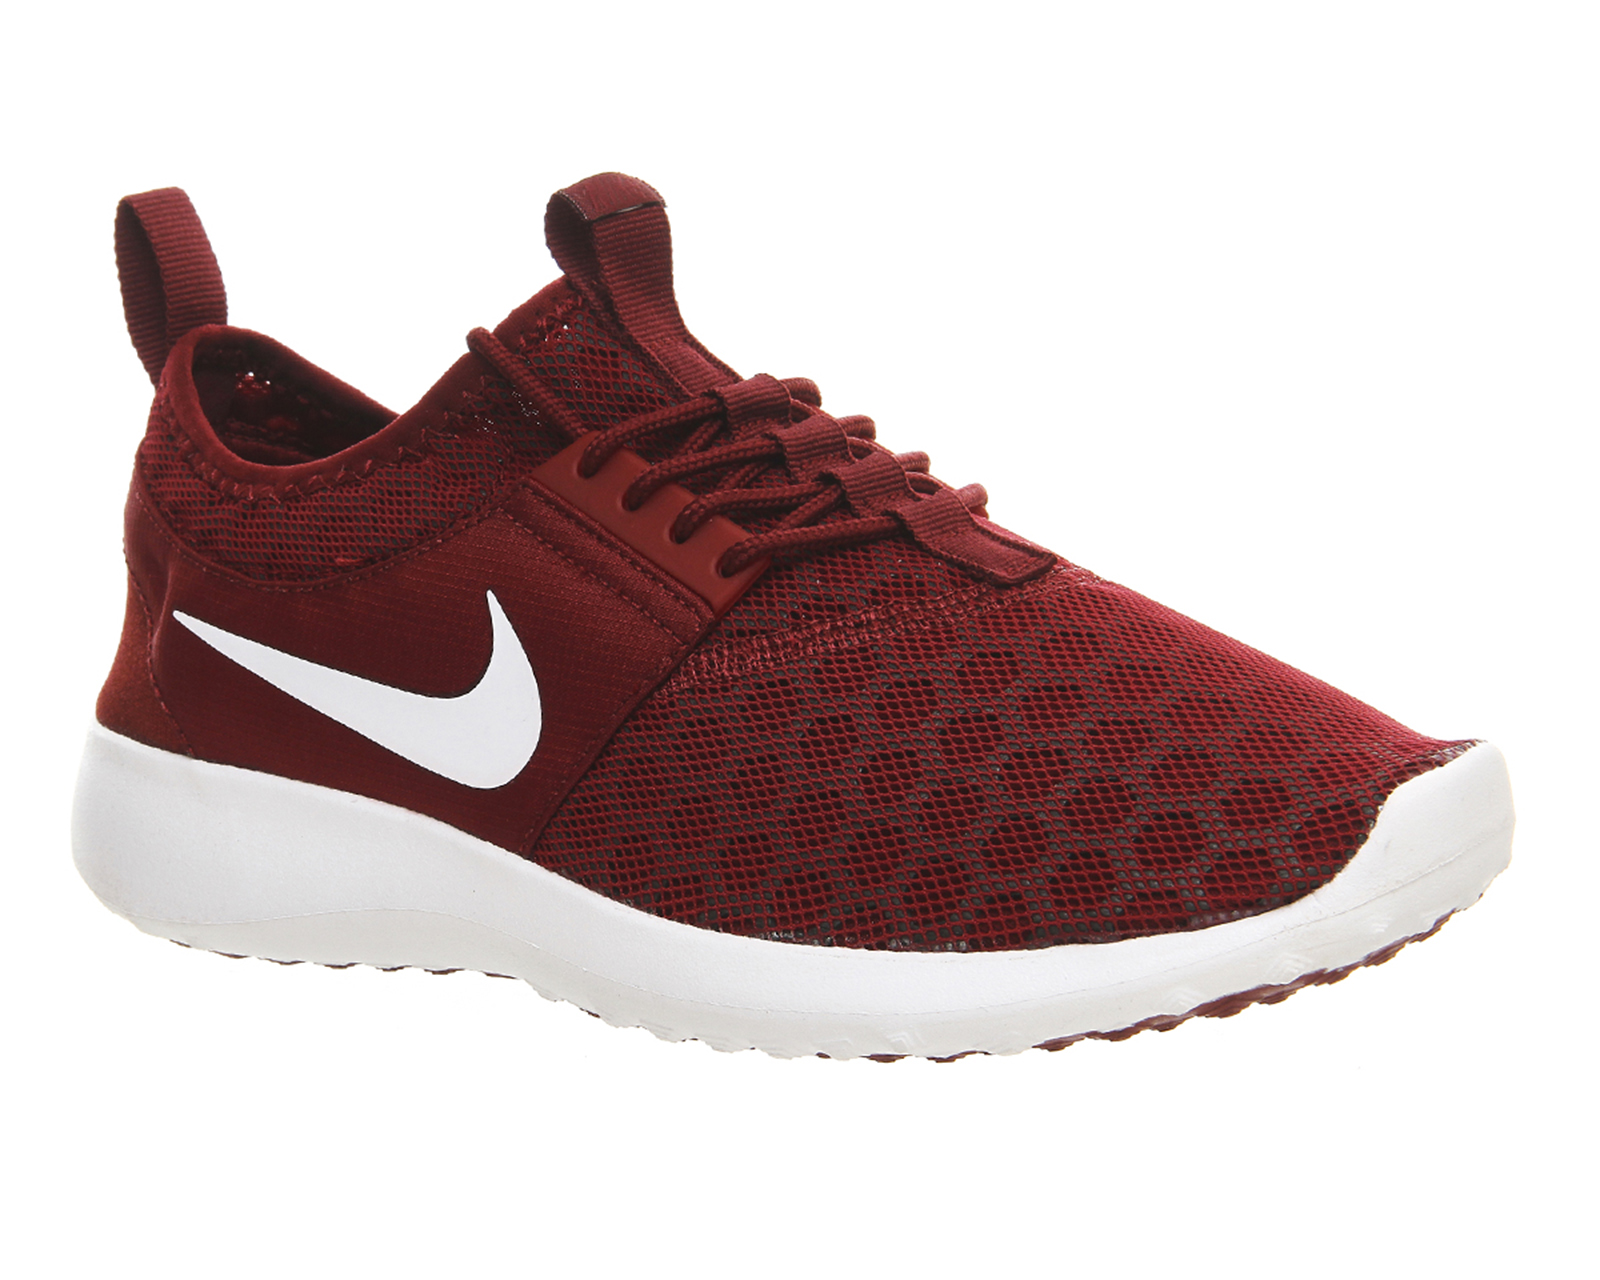 Nike Juvenate Team Red M - Unisex Sports